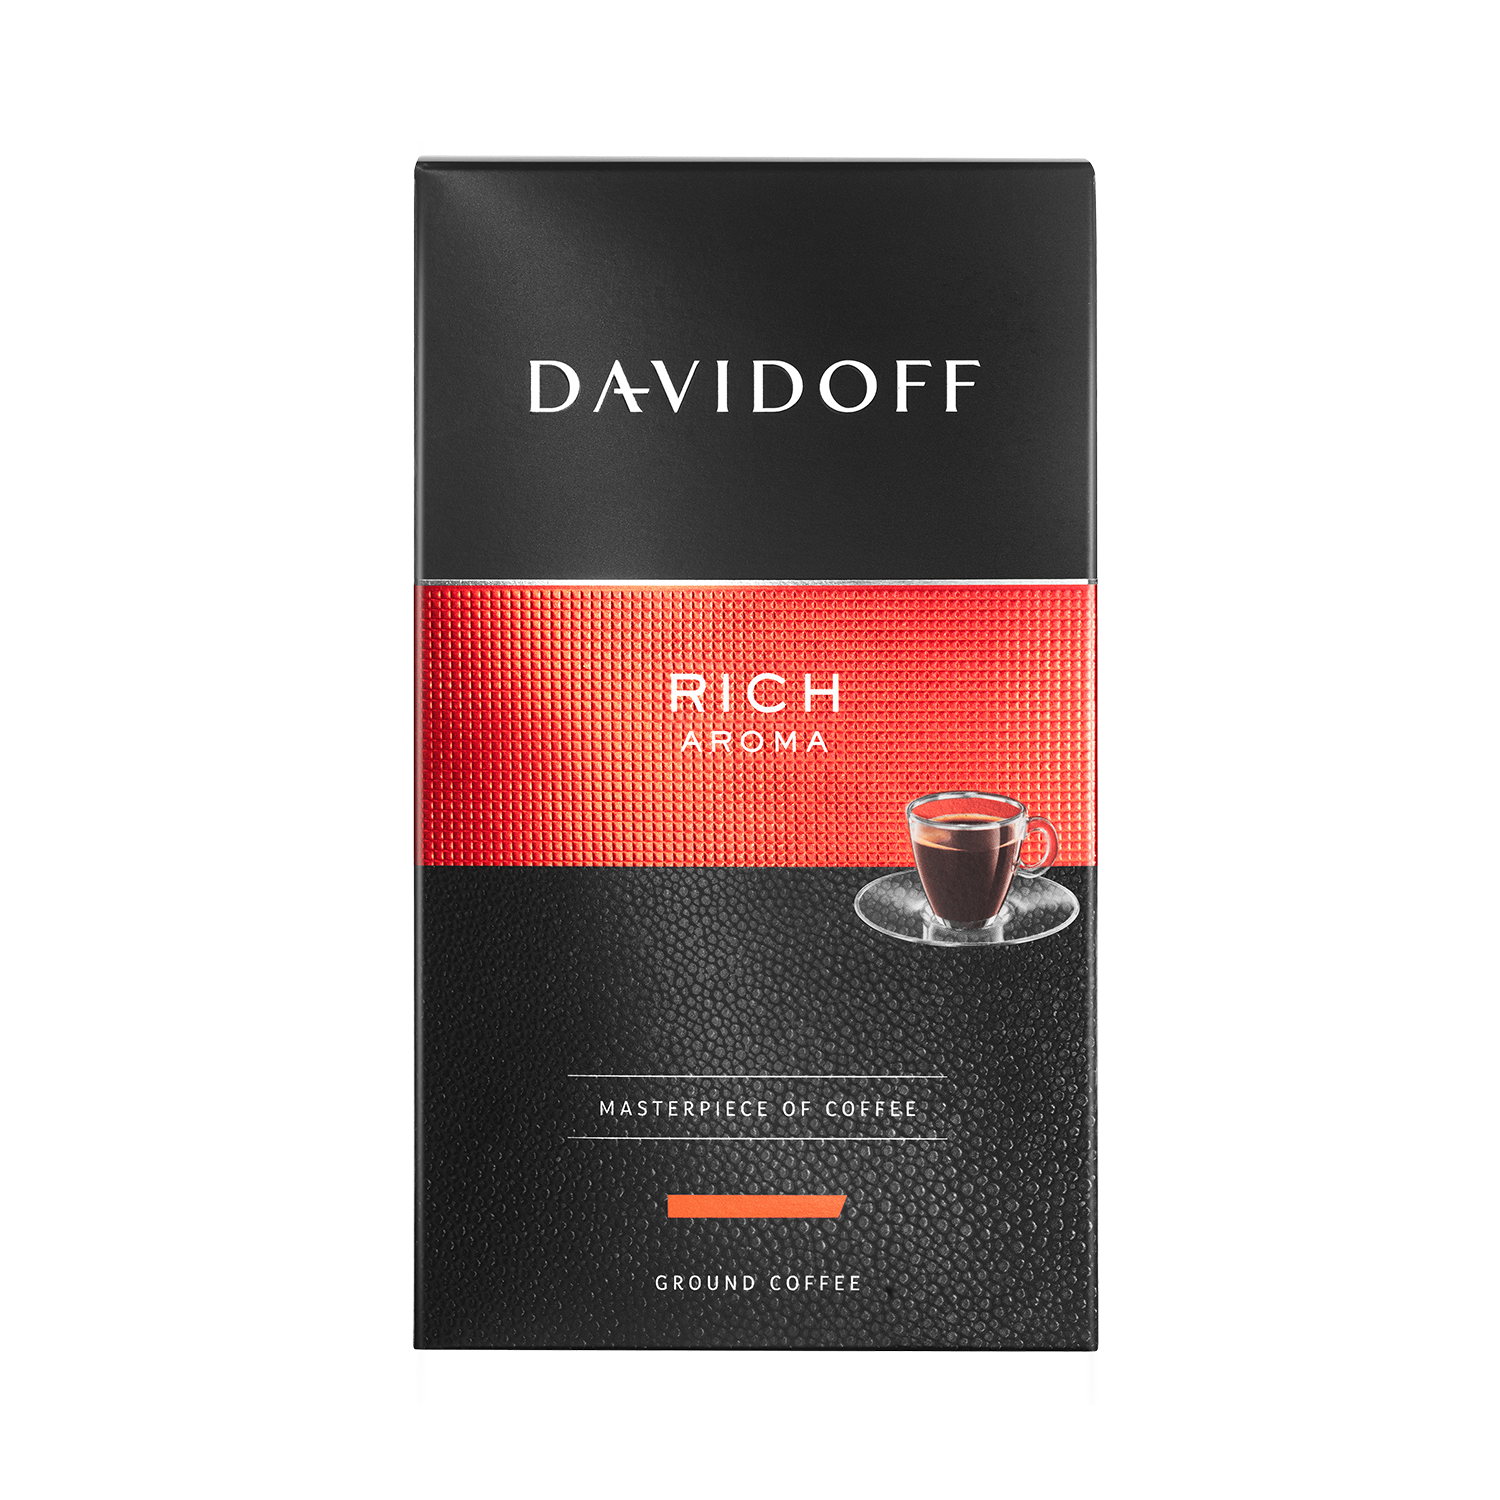 DAVIDOFF coffee – Rich Aroma – Roasted ground